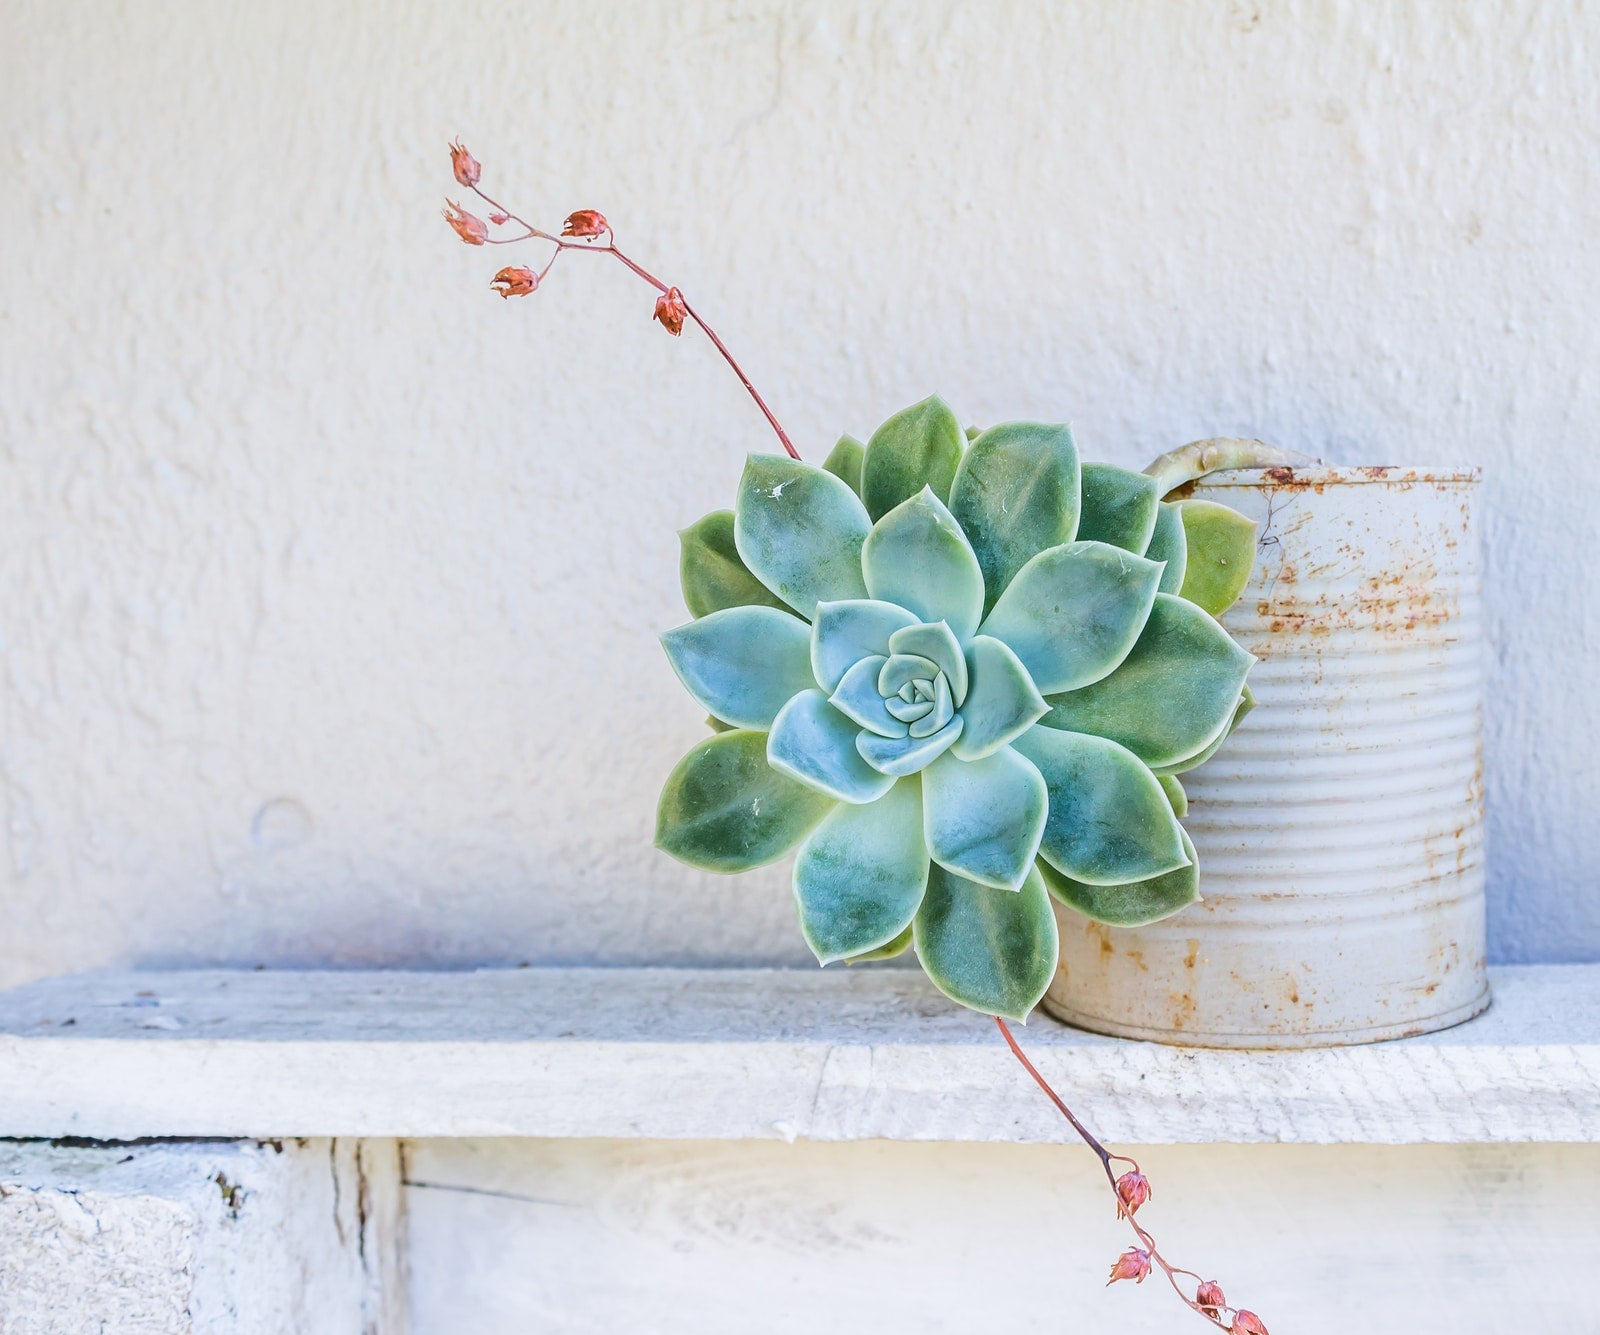 Photo of a Graptopetalum succulent pot plant against a white wall